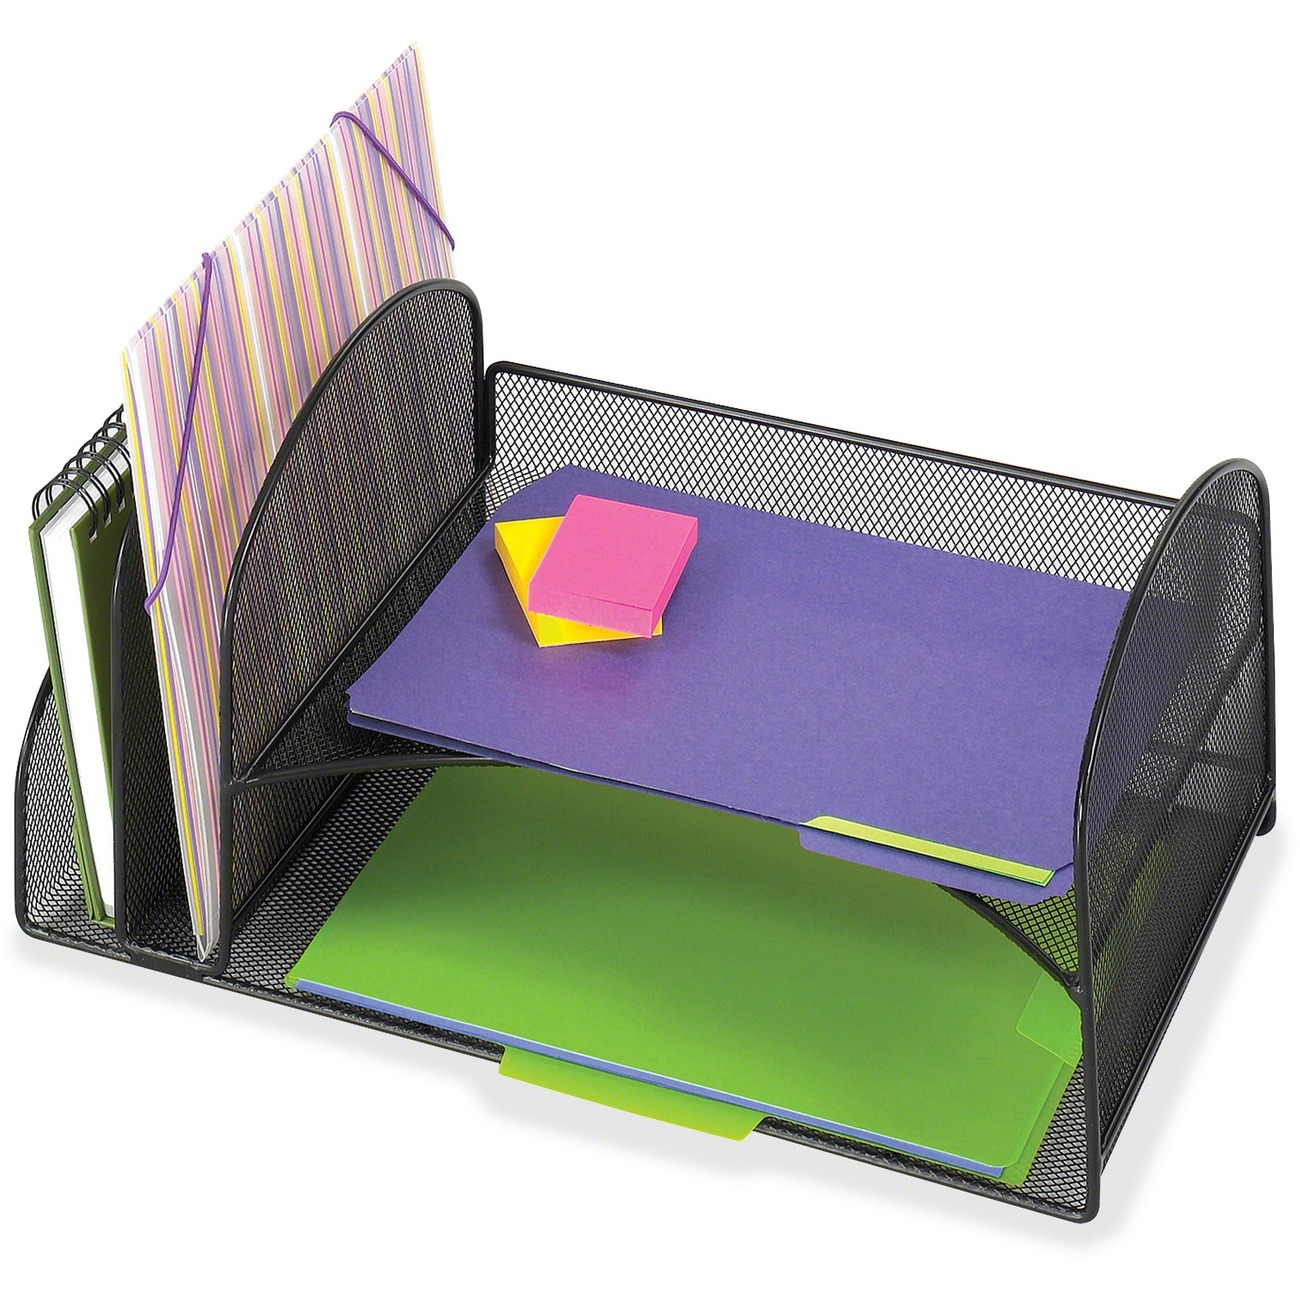 Mesh Desk Organizer Offers Two Vertical File Sections For Folders And Horizontal Shelves Letter Size Doents Safco S Onyx Drawer